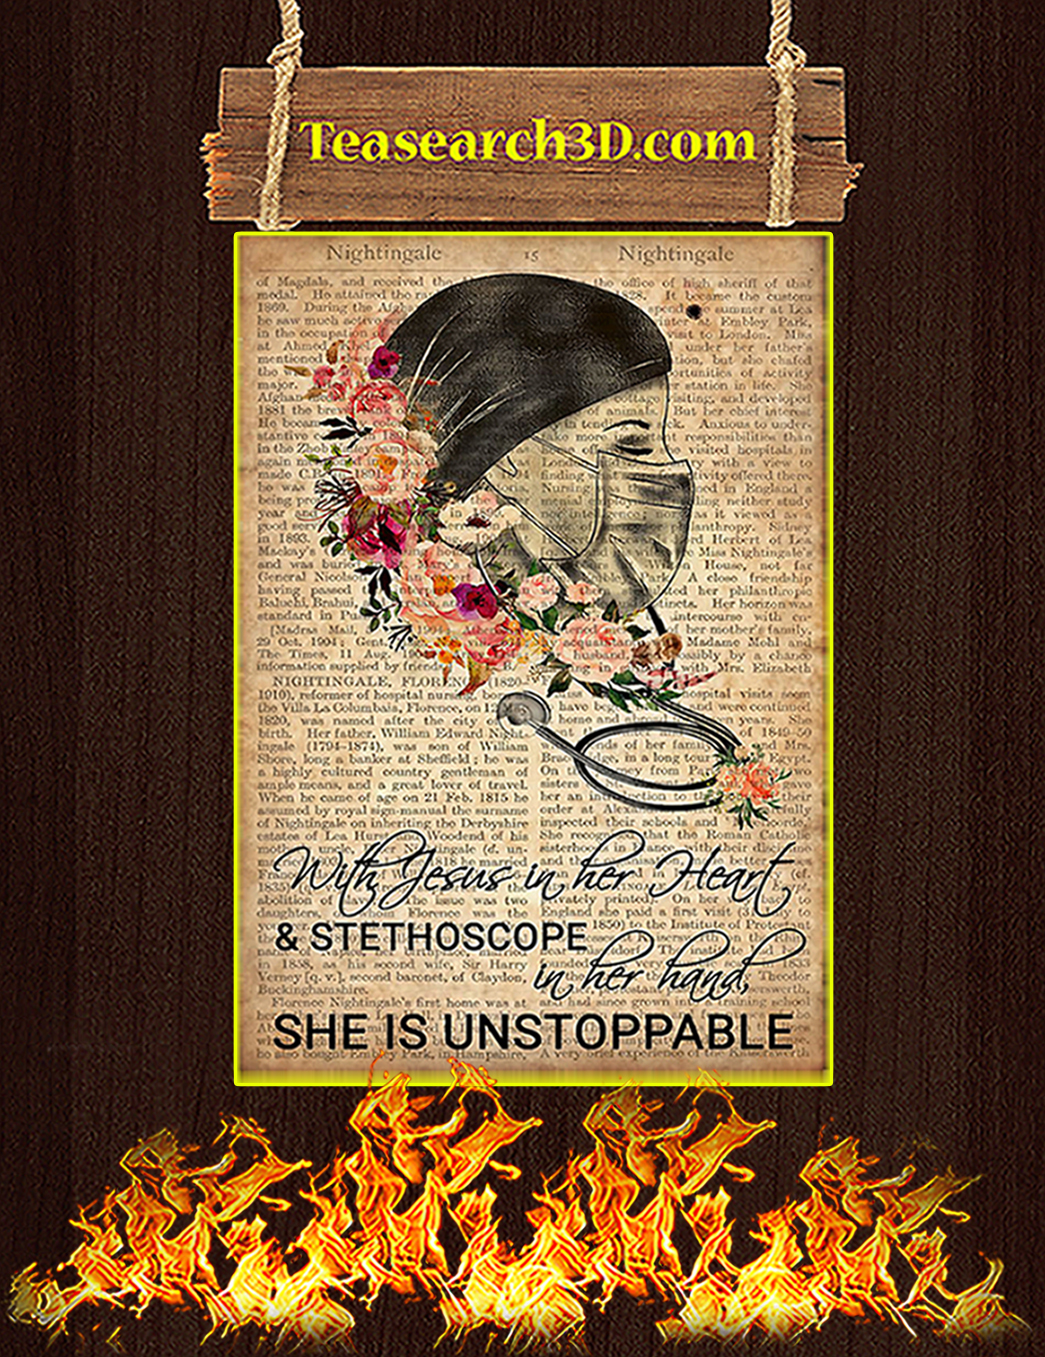 Nurse With Jesus in her heart she is unstoppable poster A1